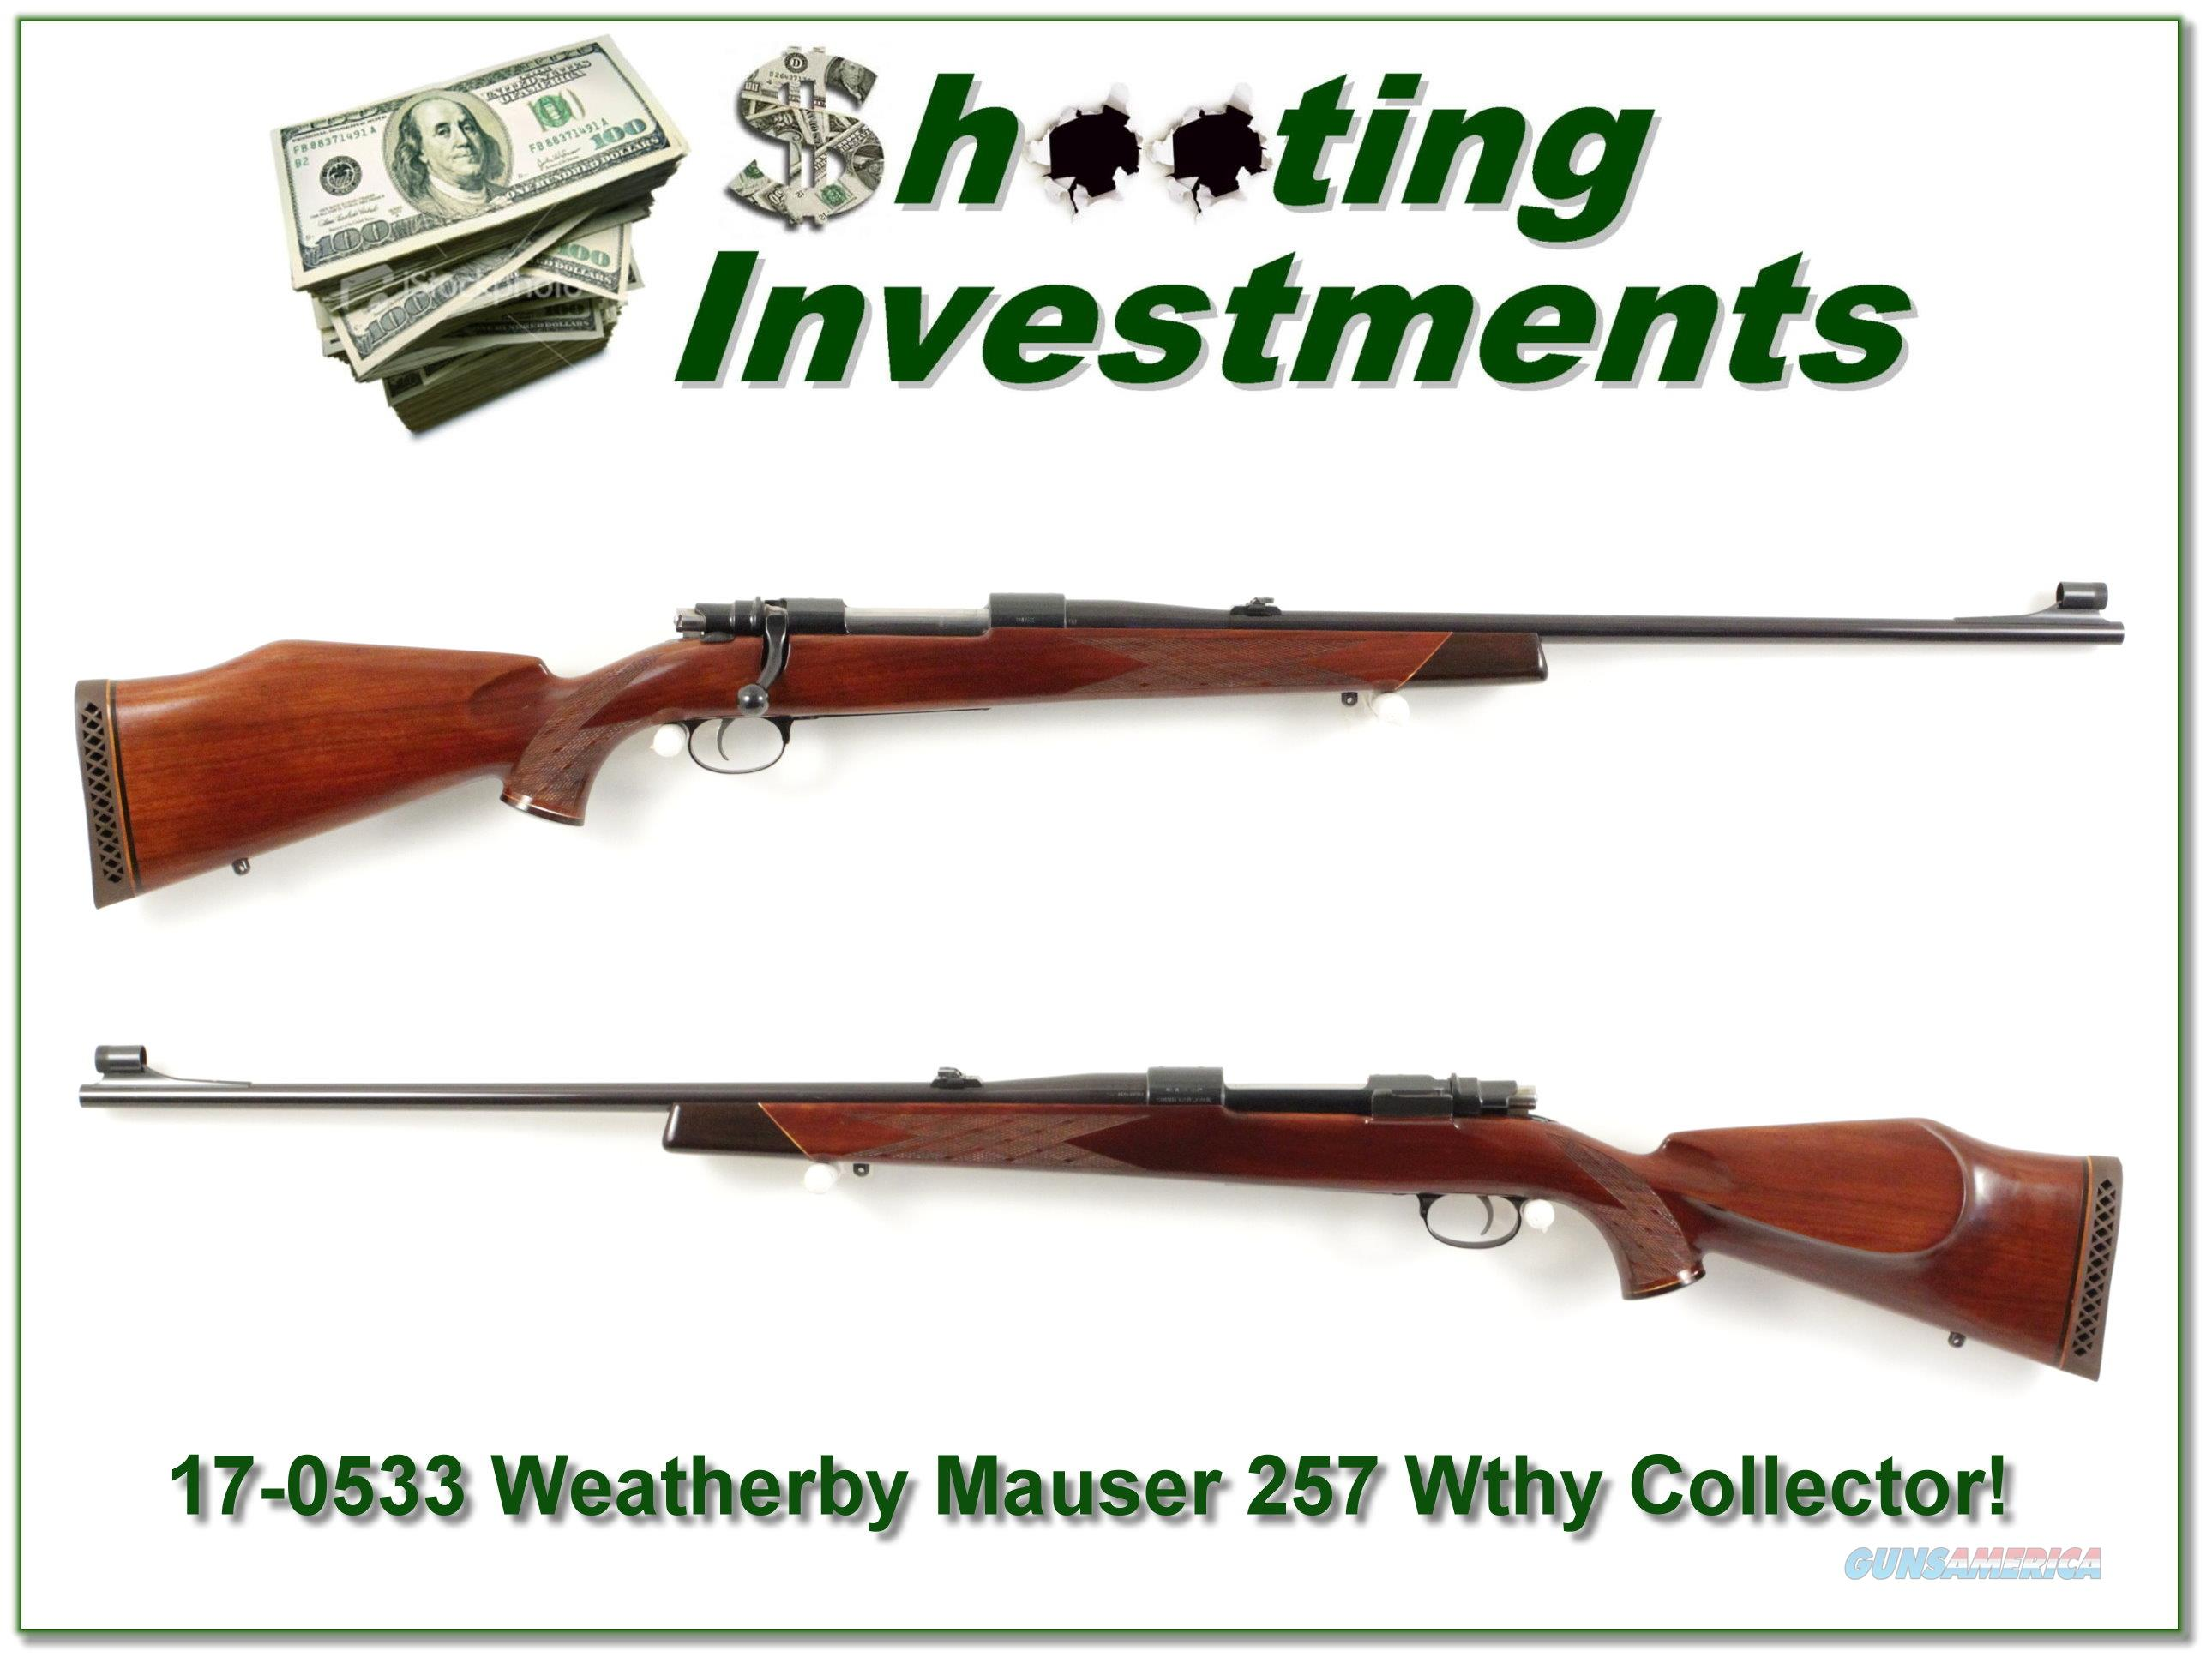 Weatherby 257 Wthy 1958 Mauser Collector!  Guns > Rifles > Weatherby Rifles > Sporting